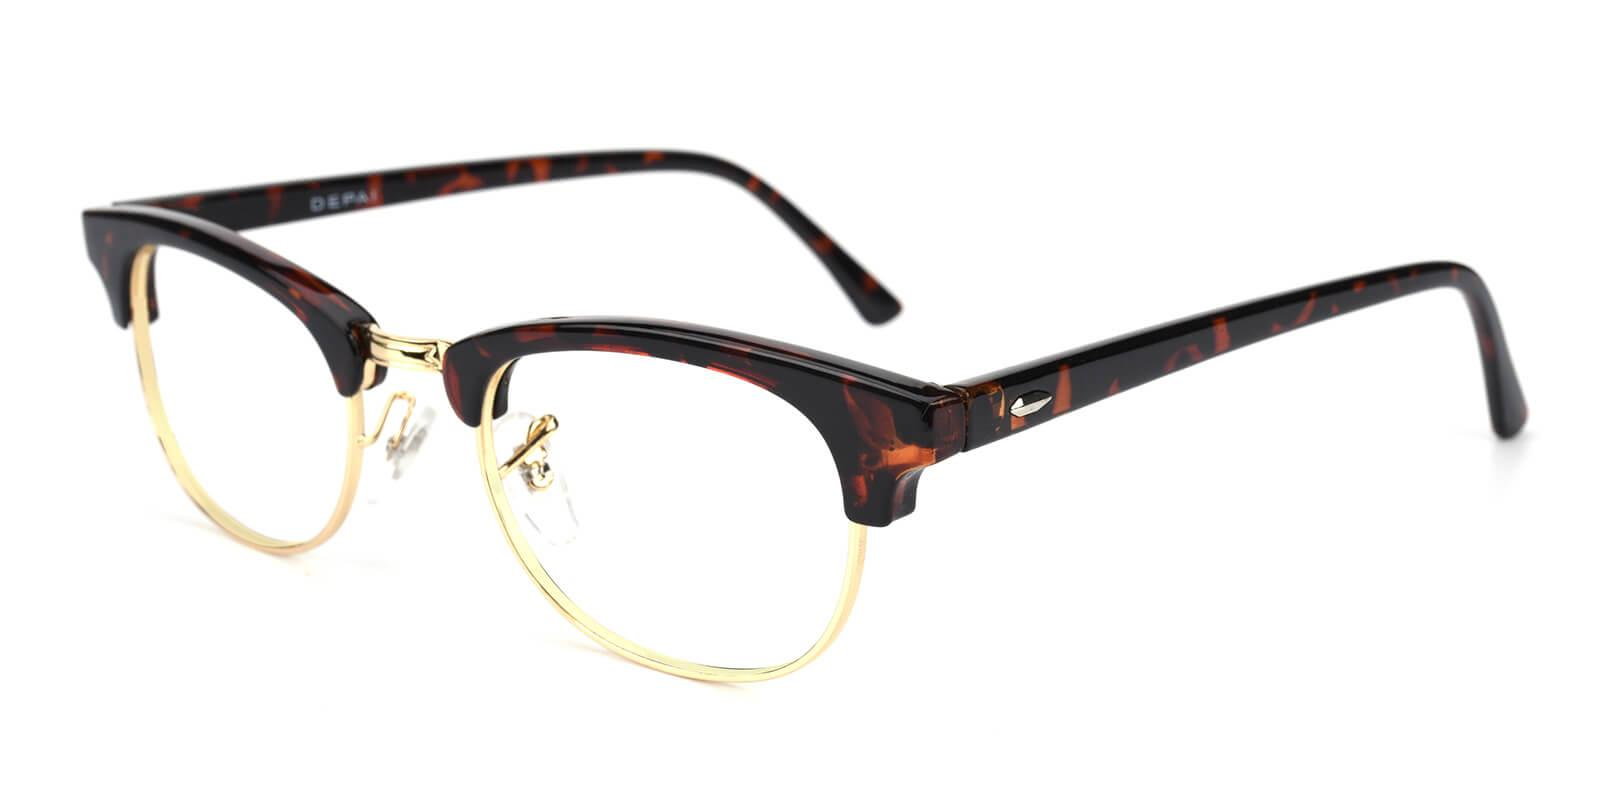 Sercily-Tortoise-Square-TR-Eyeglasses-additional1